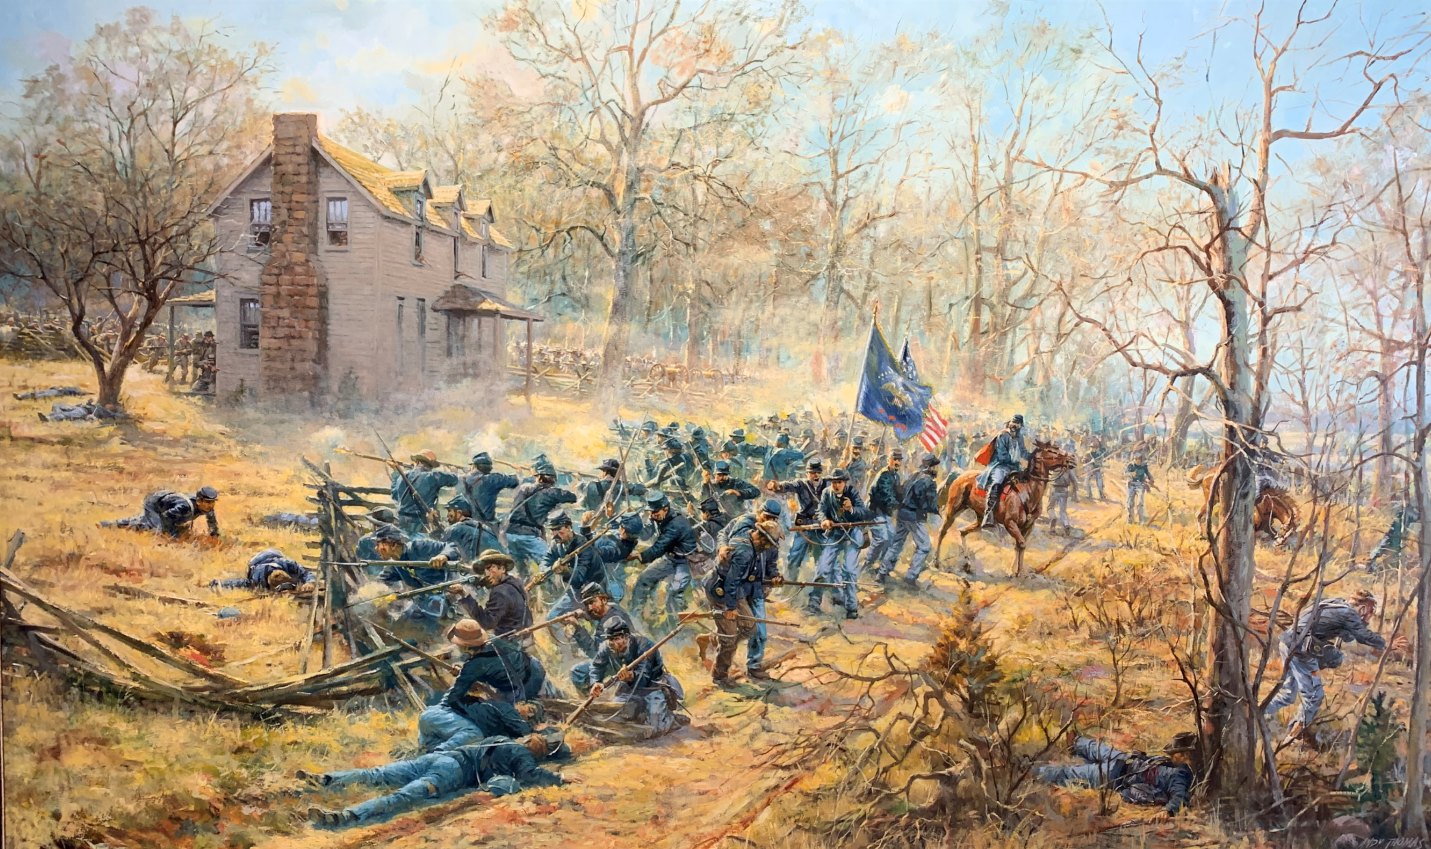 Painting of The Bayonet or Retreat by Andy Thomas